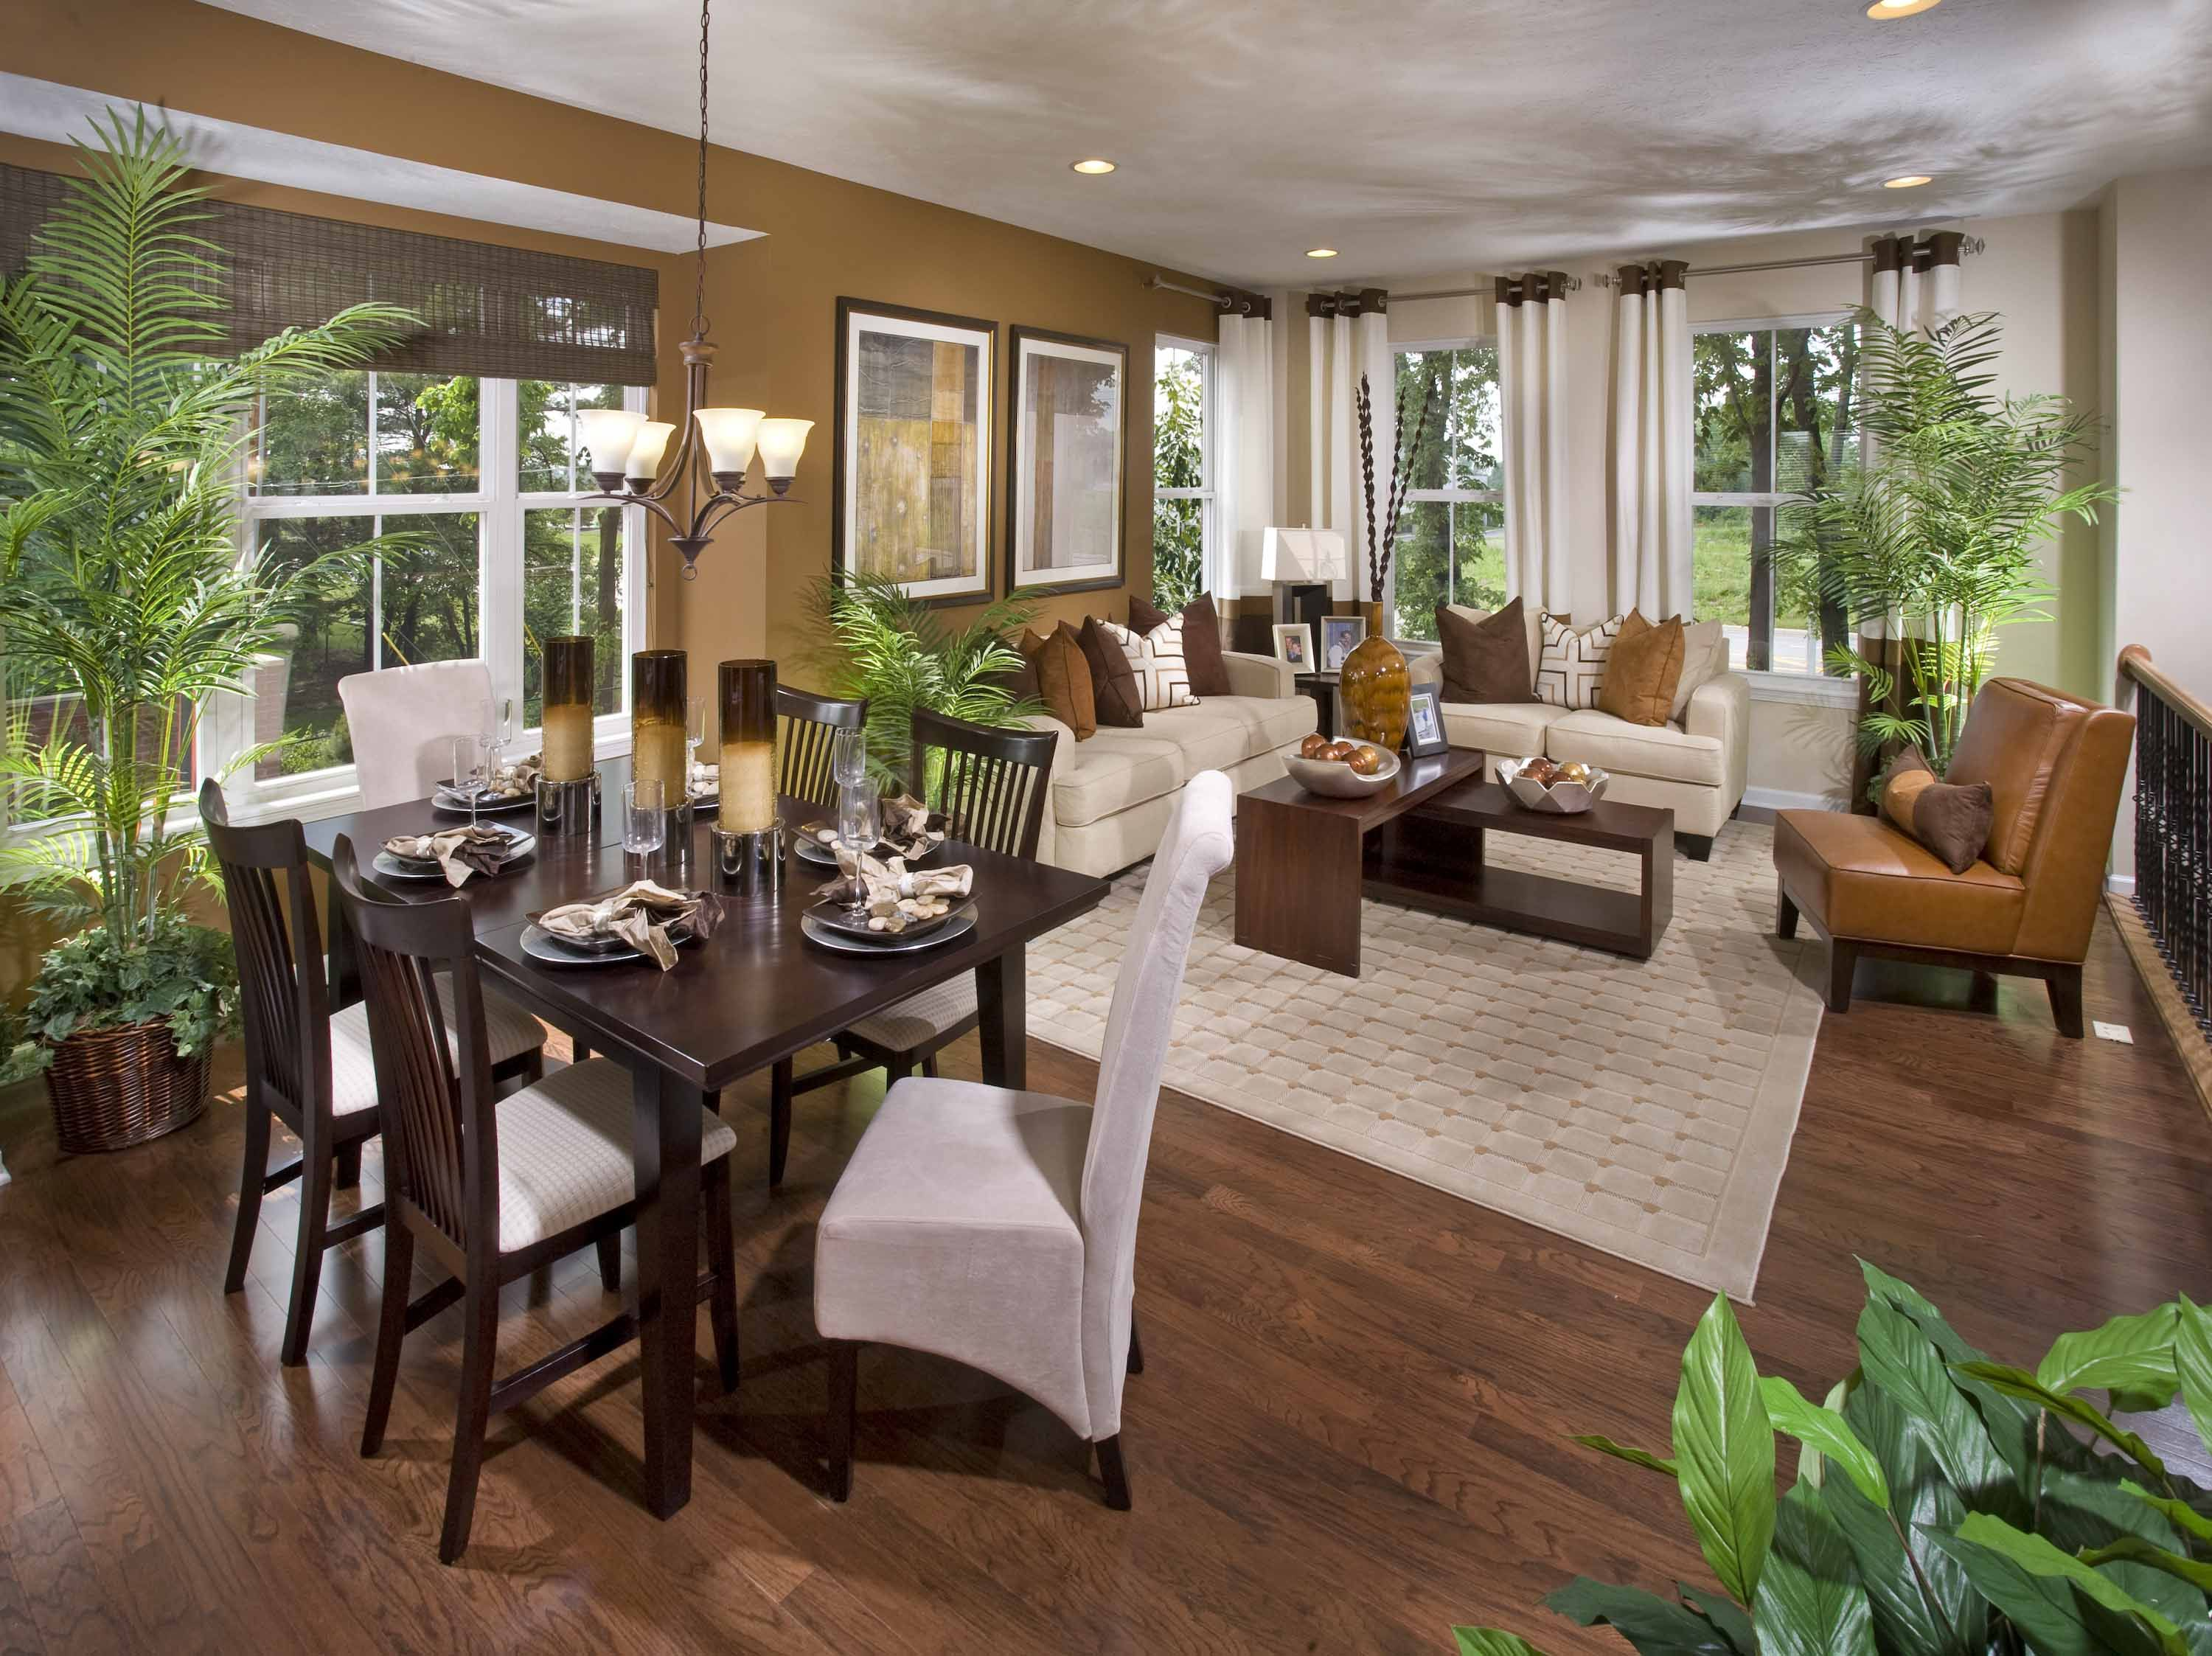 Light, bright living and dining rooms | Outdoor furniture ... on Outdoor Living Room Set id=18497